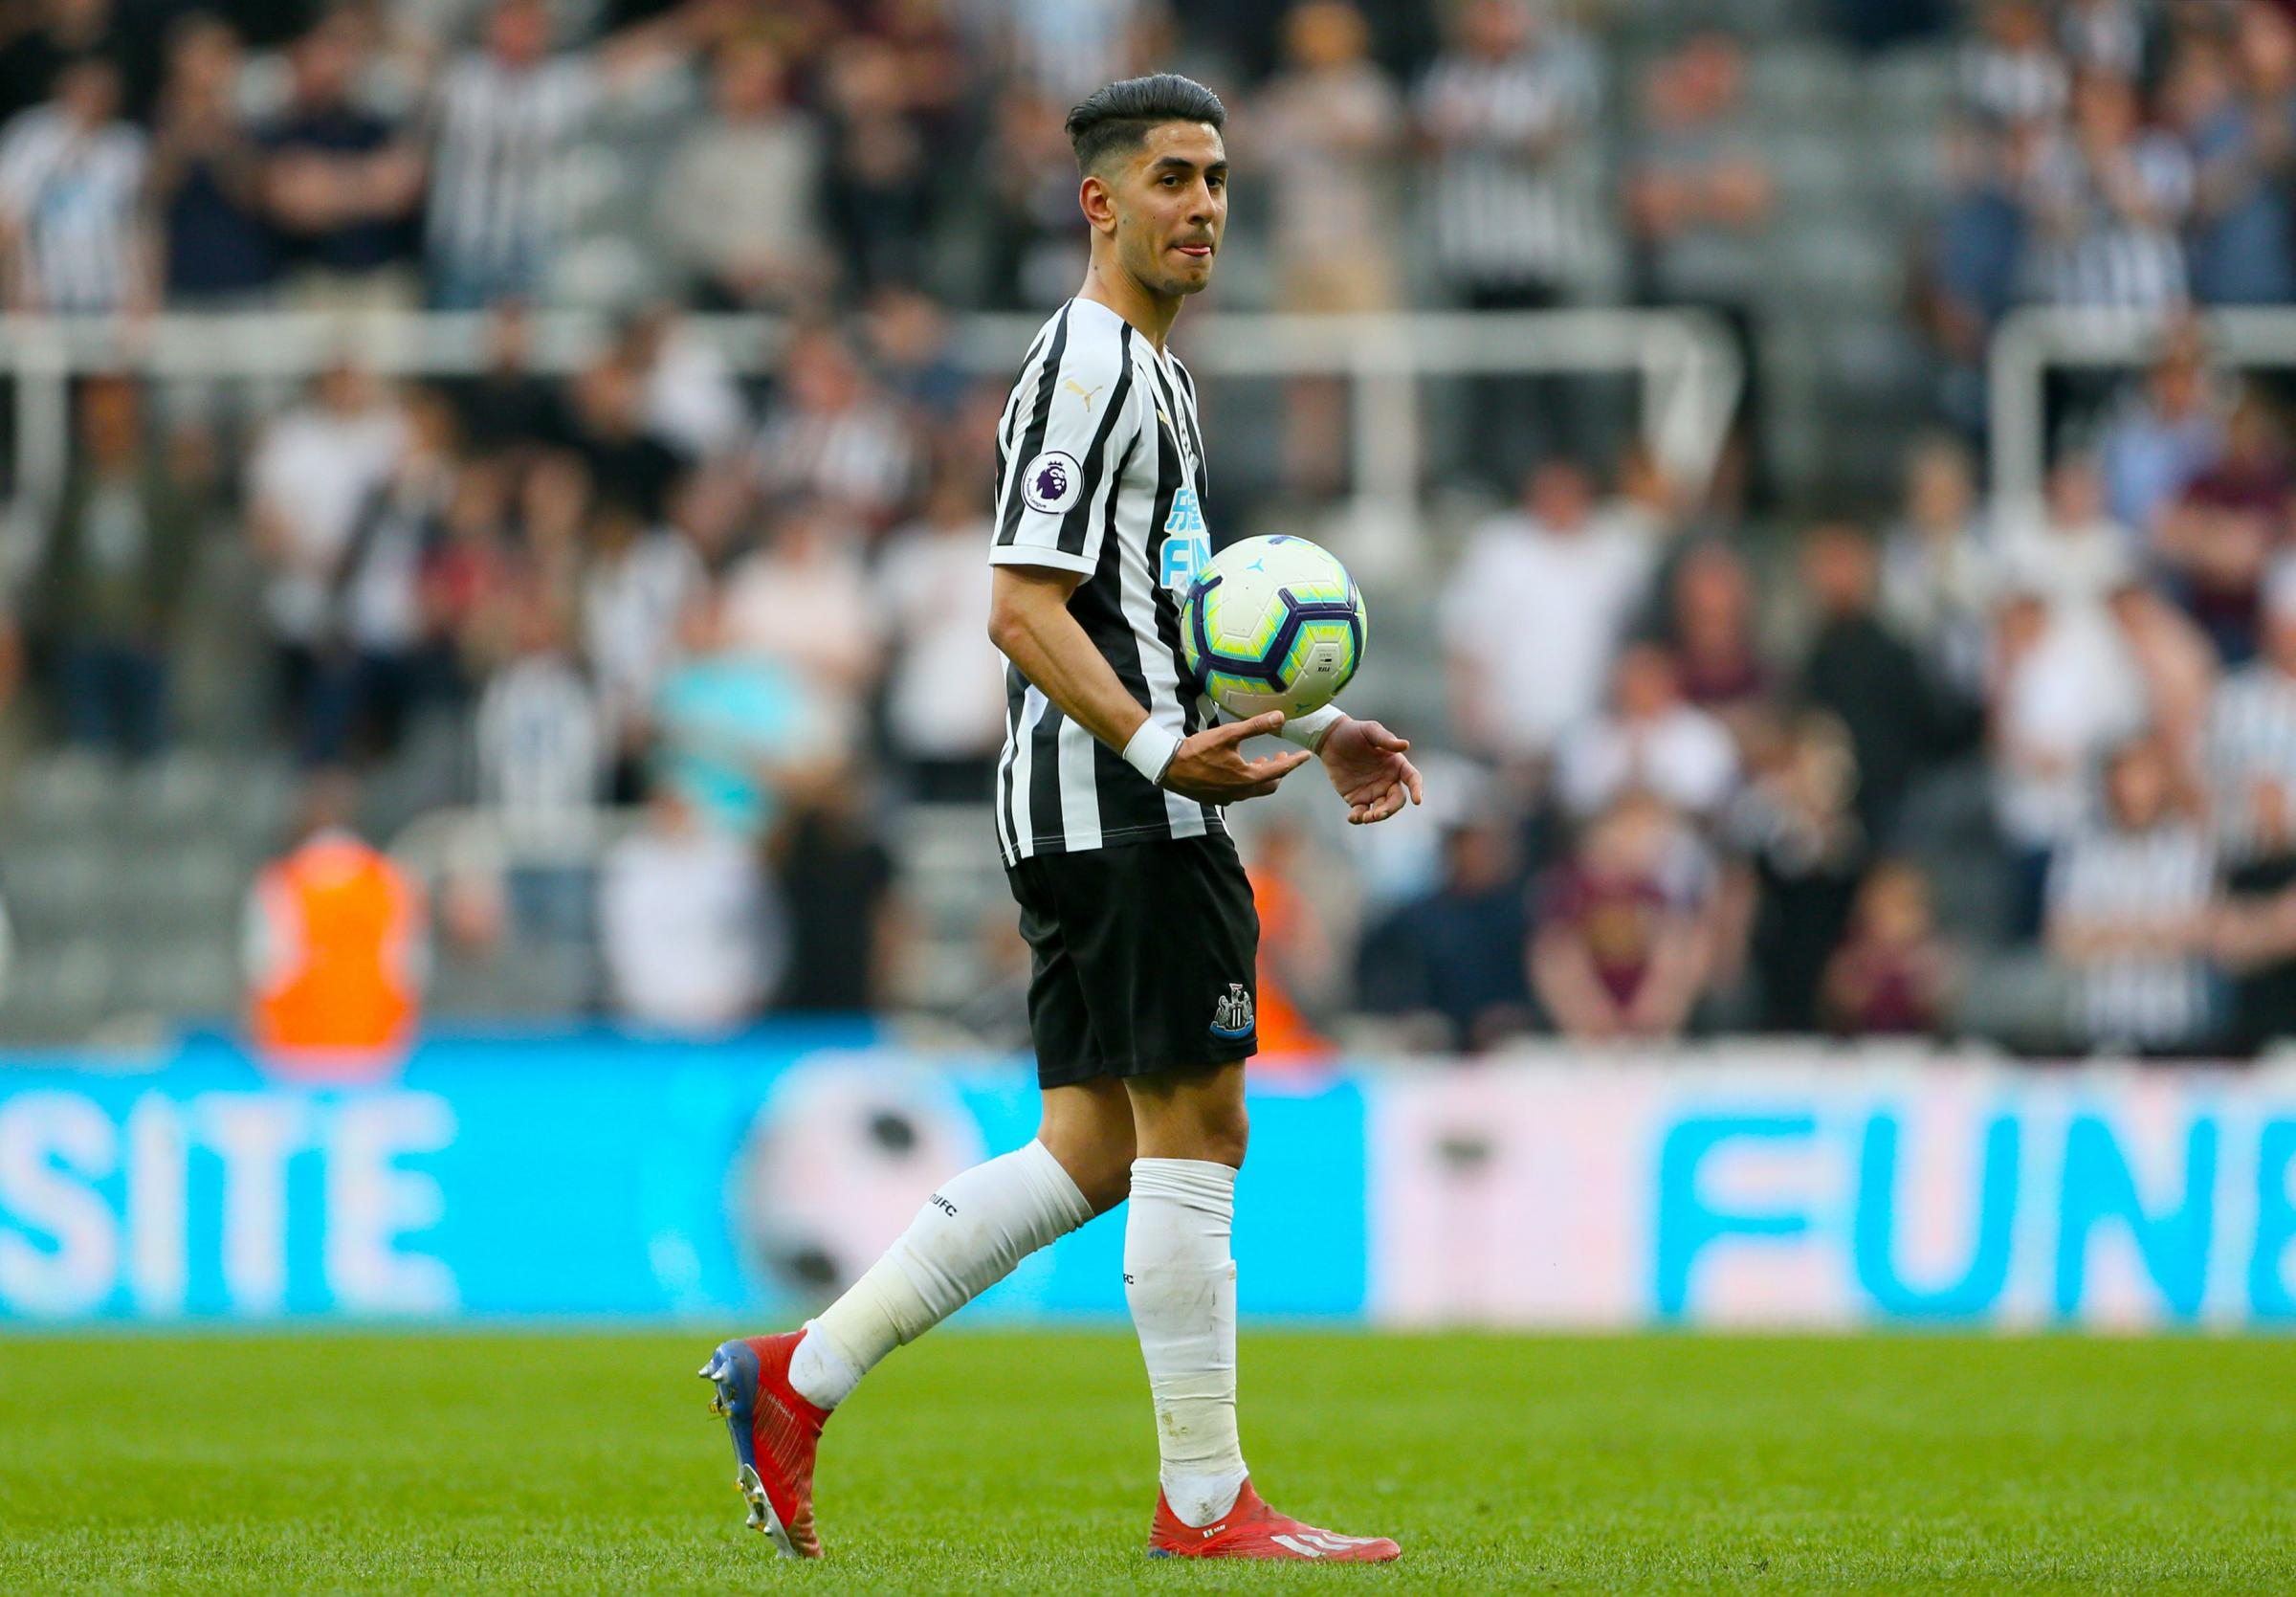 Newcastle United's Ayoze Perez celebrates after the final whistle of the Premier League match at St James' Park, Newcastle. PRESS ASSOCIATION Photo. Picture date: Saturday April 20, 2019. See PA story SOCCER Newcastle. Photo credit should read: Ri